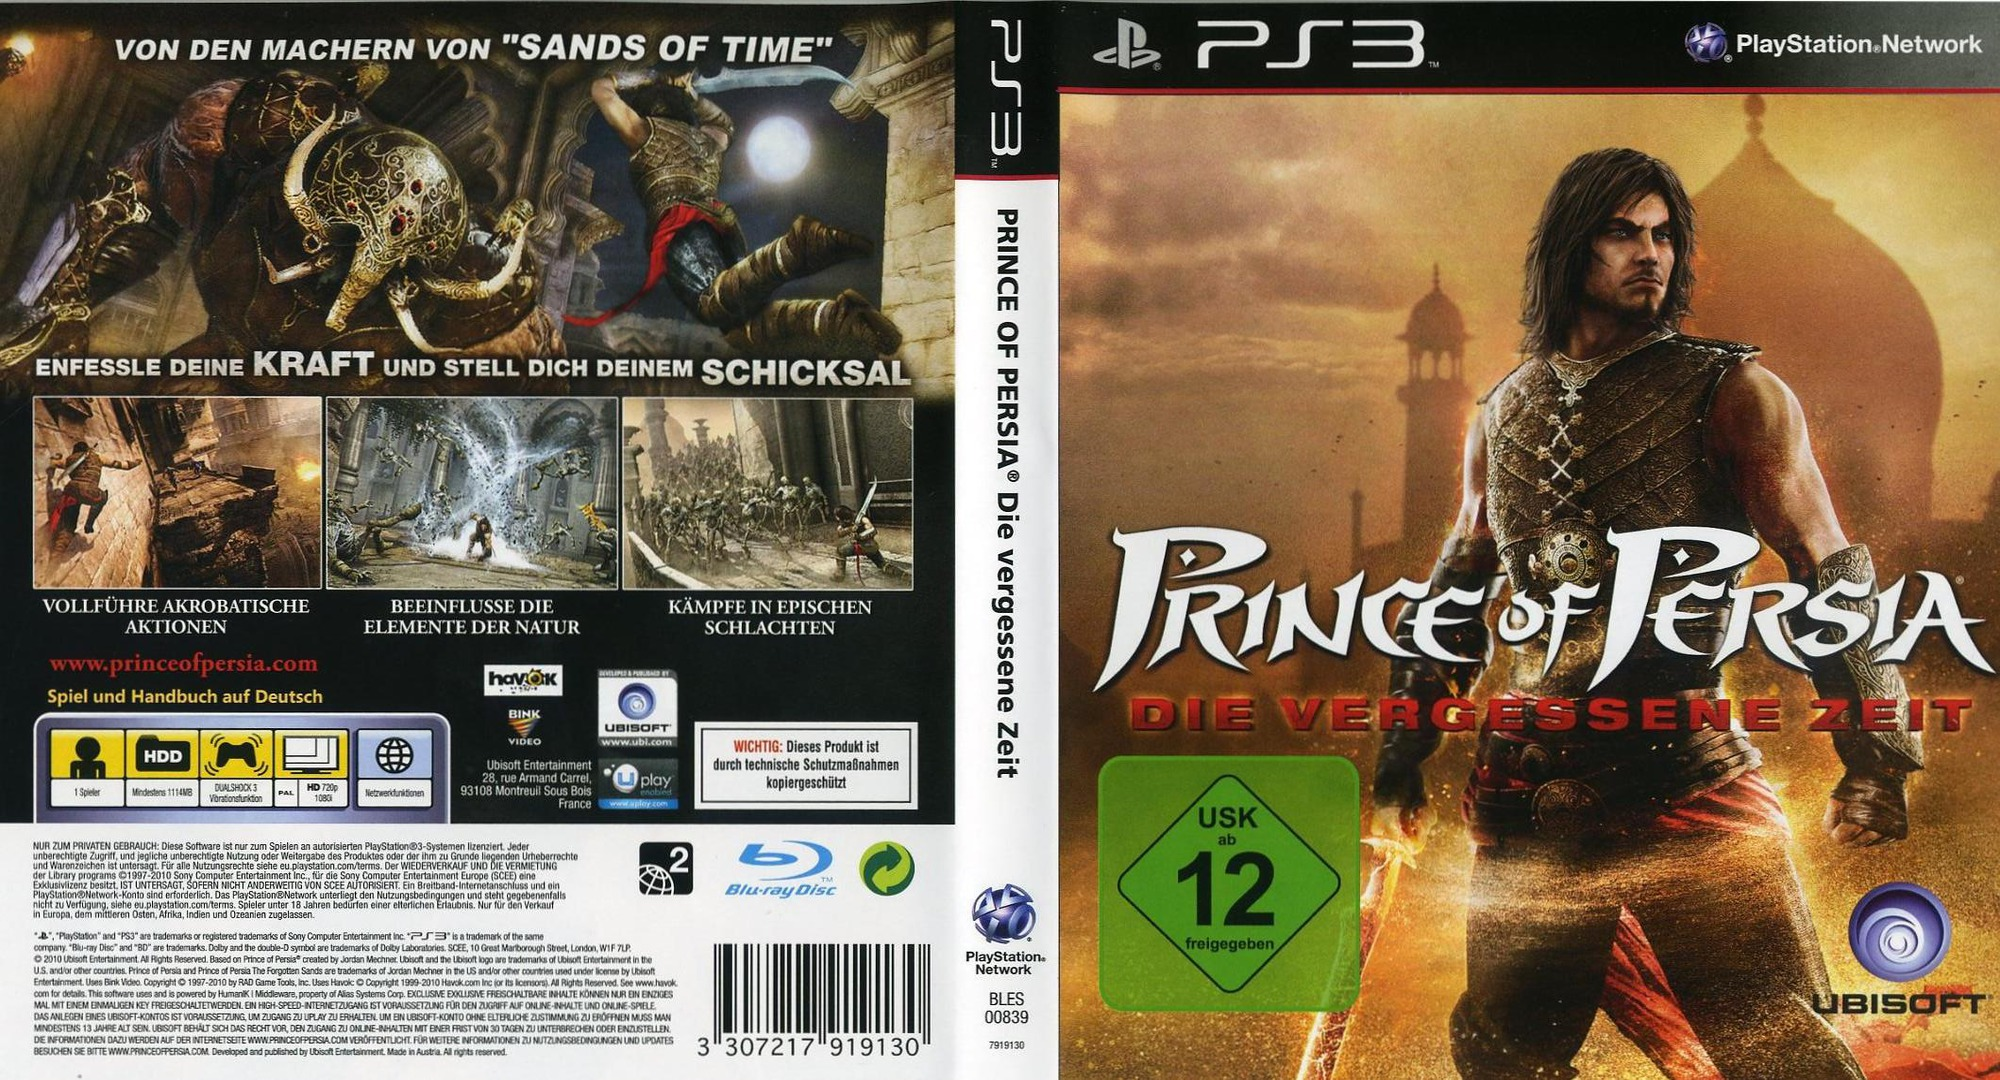 Prince of Persia: Die Vergessene Zeit PS3 coverfullHQ (BLES00839)